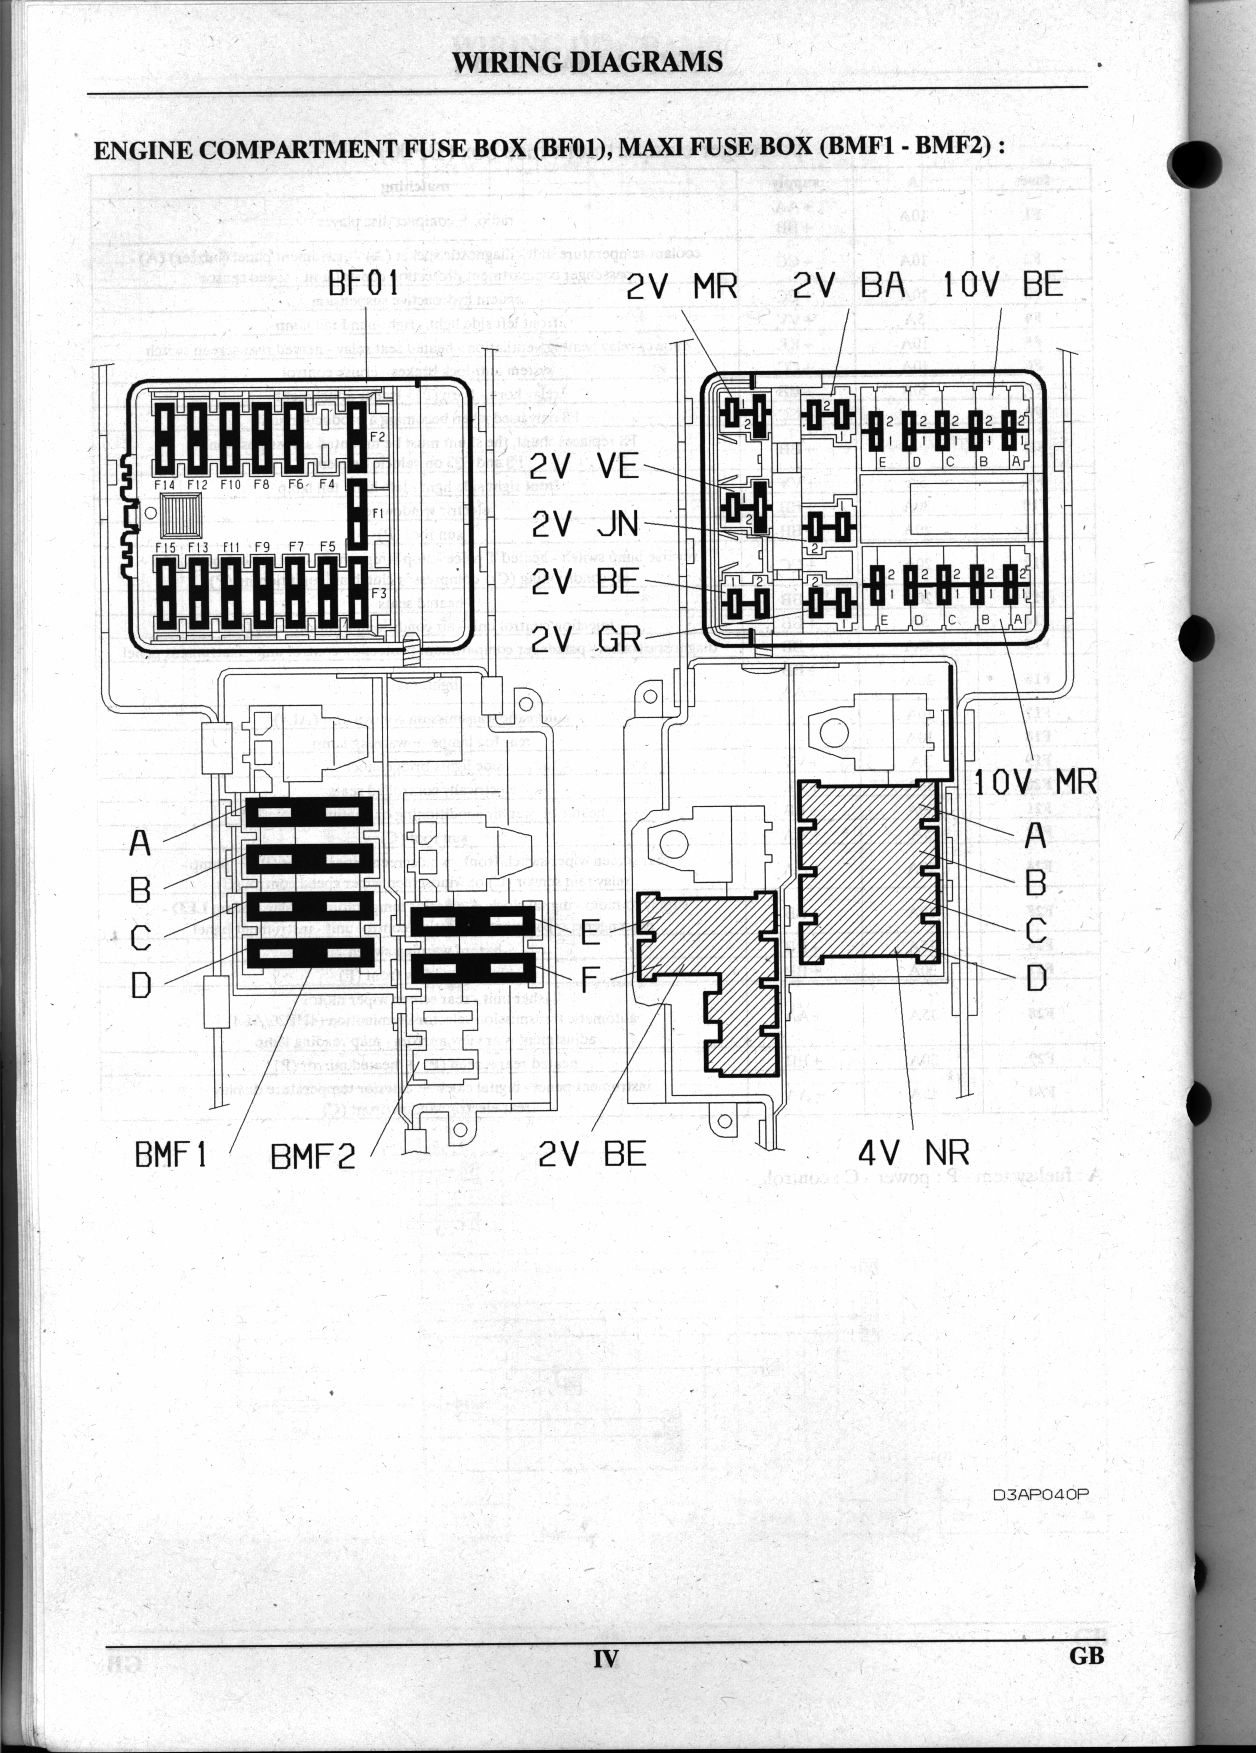 mk2ebfb_1 activa no2 she's slowly dying !!! page 2 french car forum fuse box in french at gsmx.co